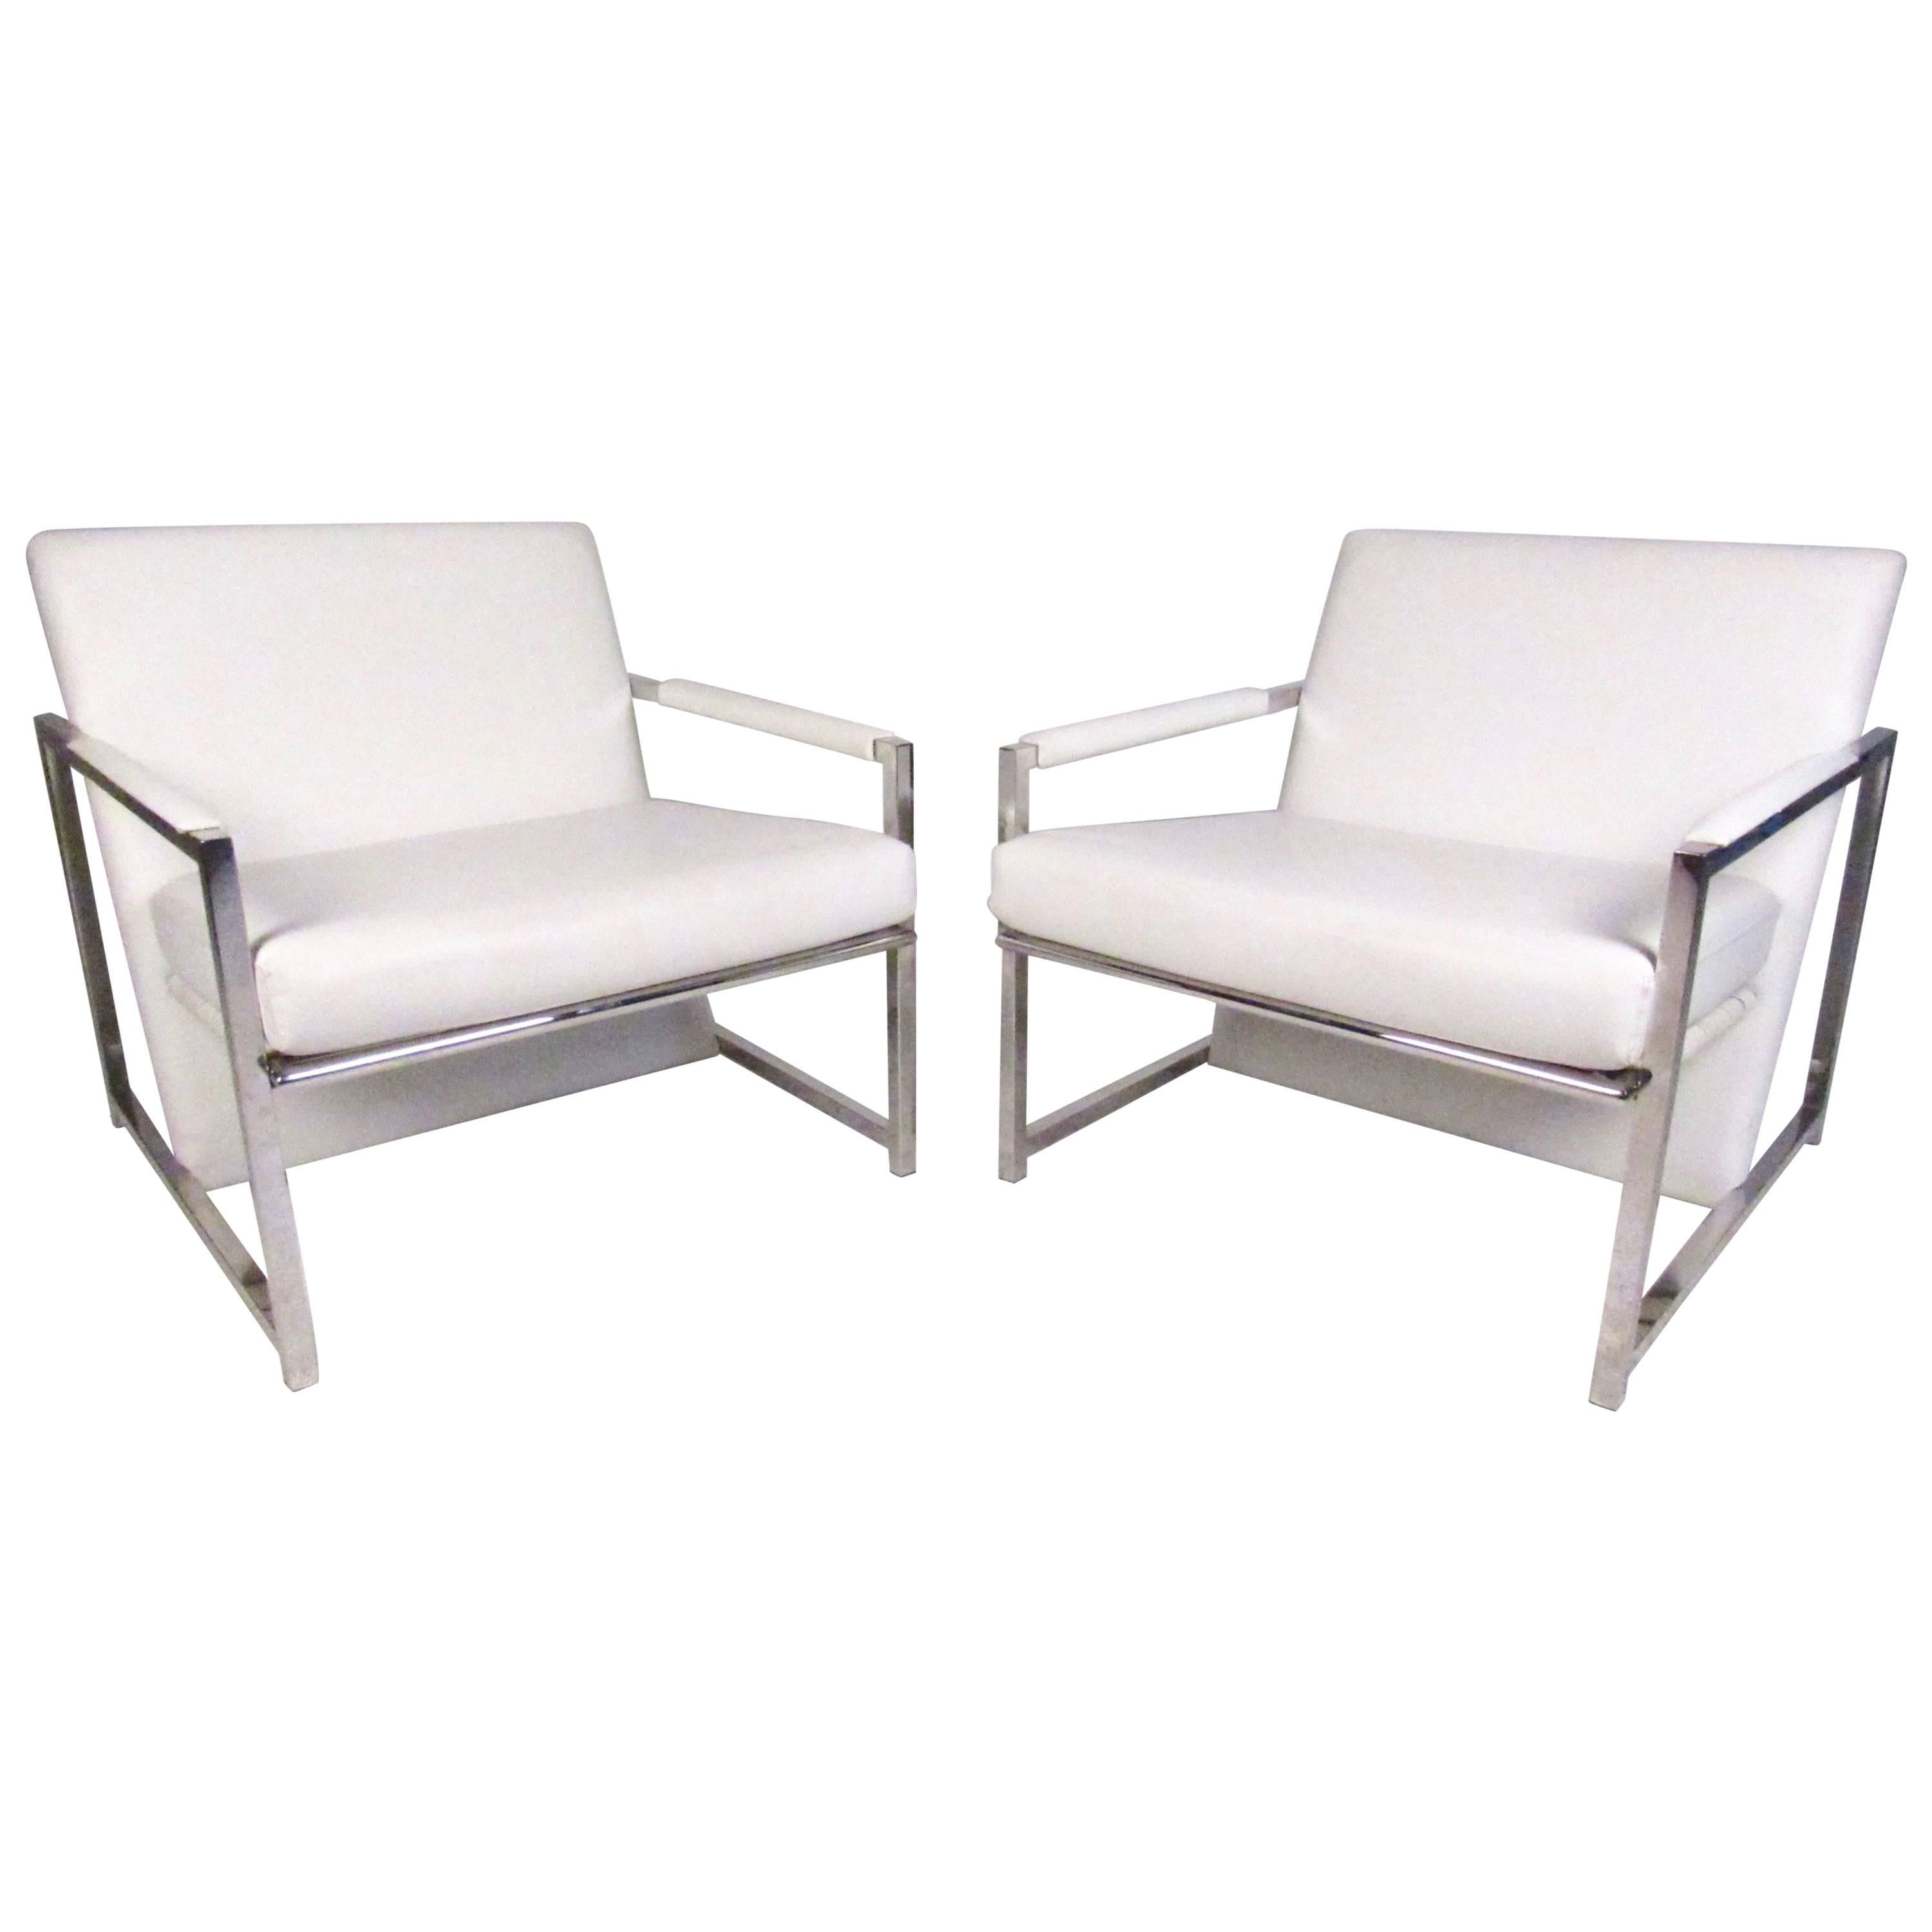 Pair of Stylish Modern Club Chairs